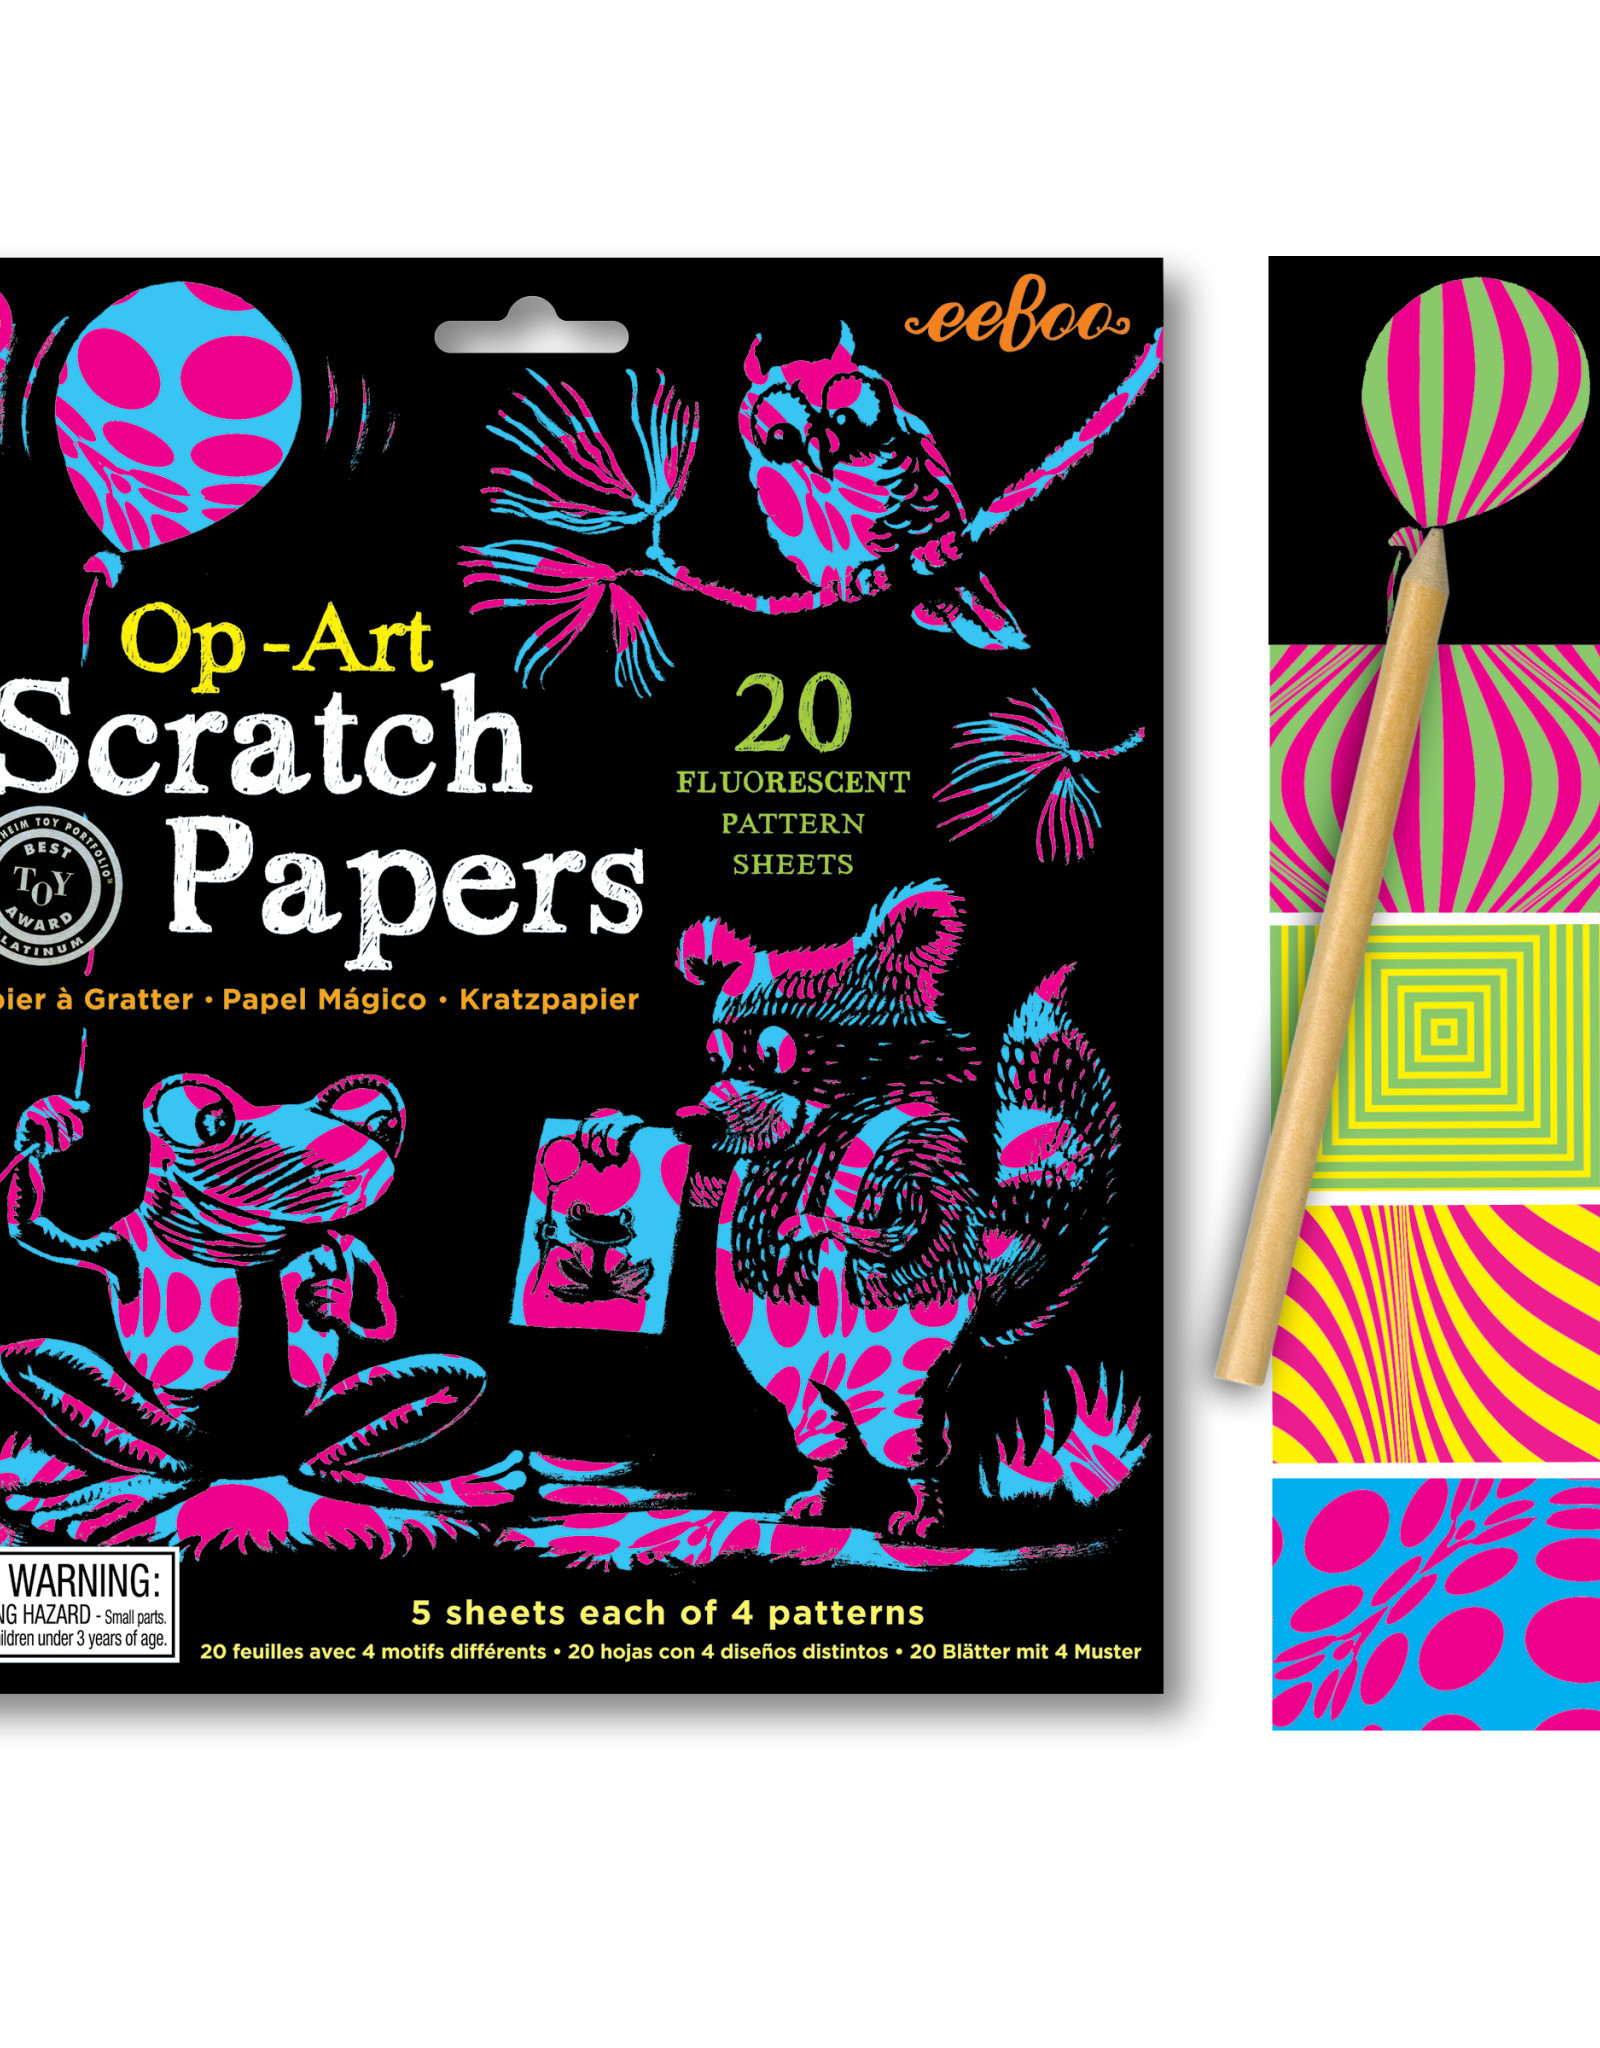 eeBoo Op-Art Scratch Papers